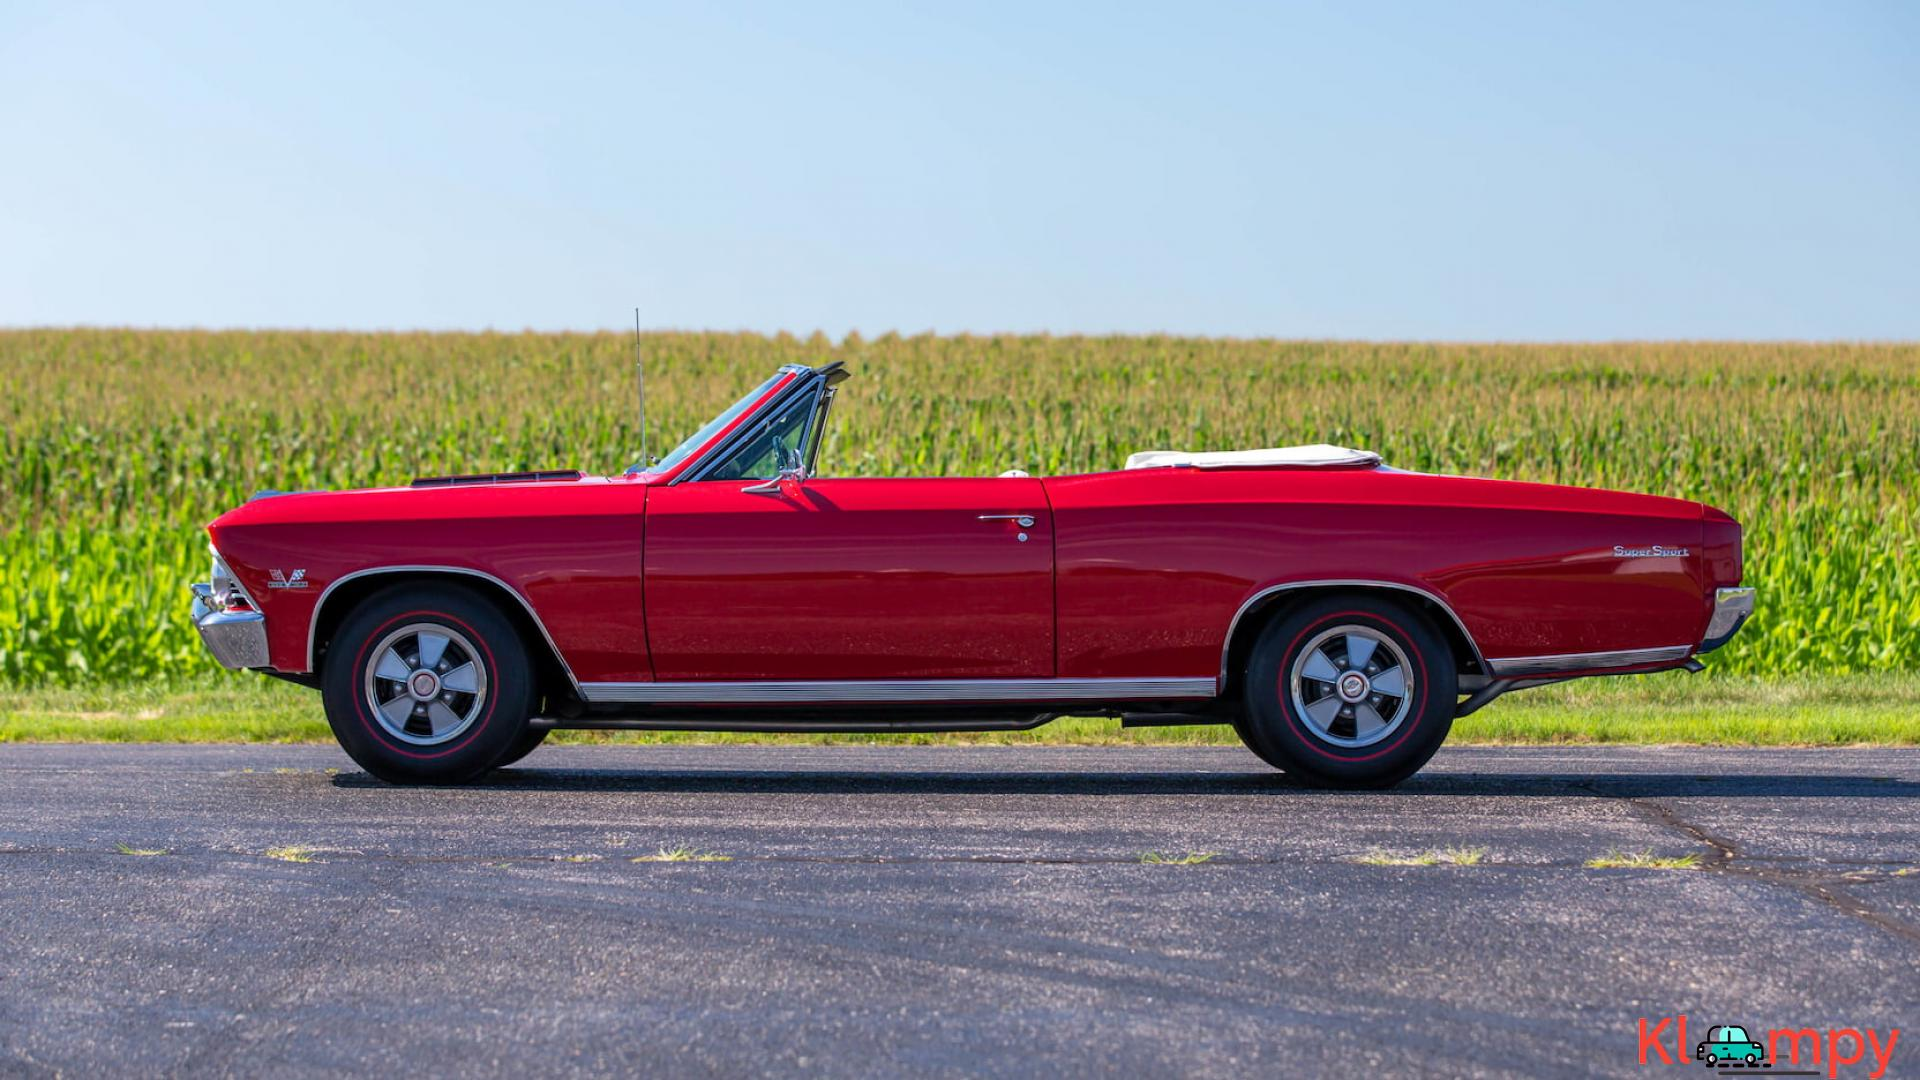 1966 Chevrolet Chevelle SS Convertible - 3/15